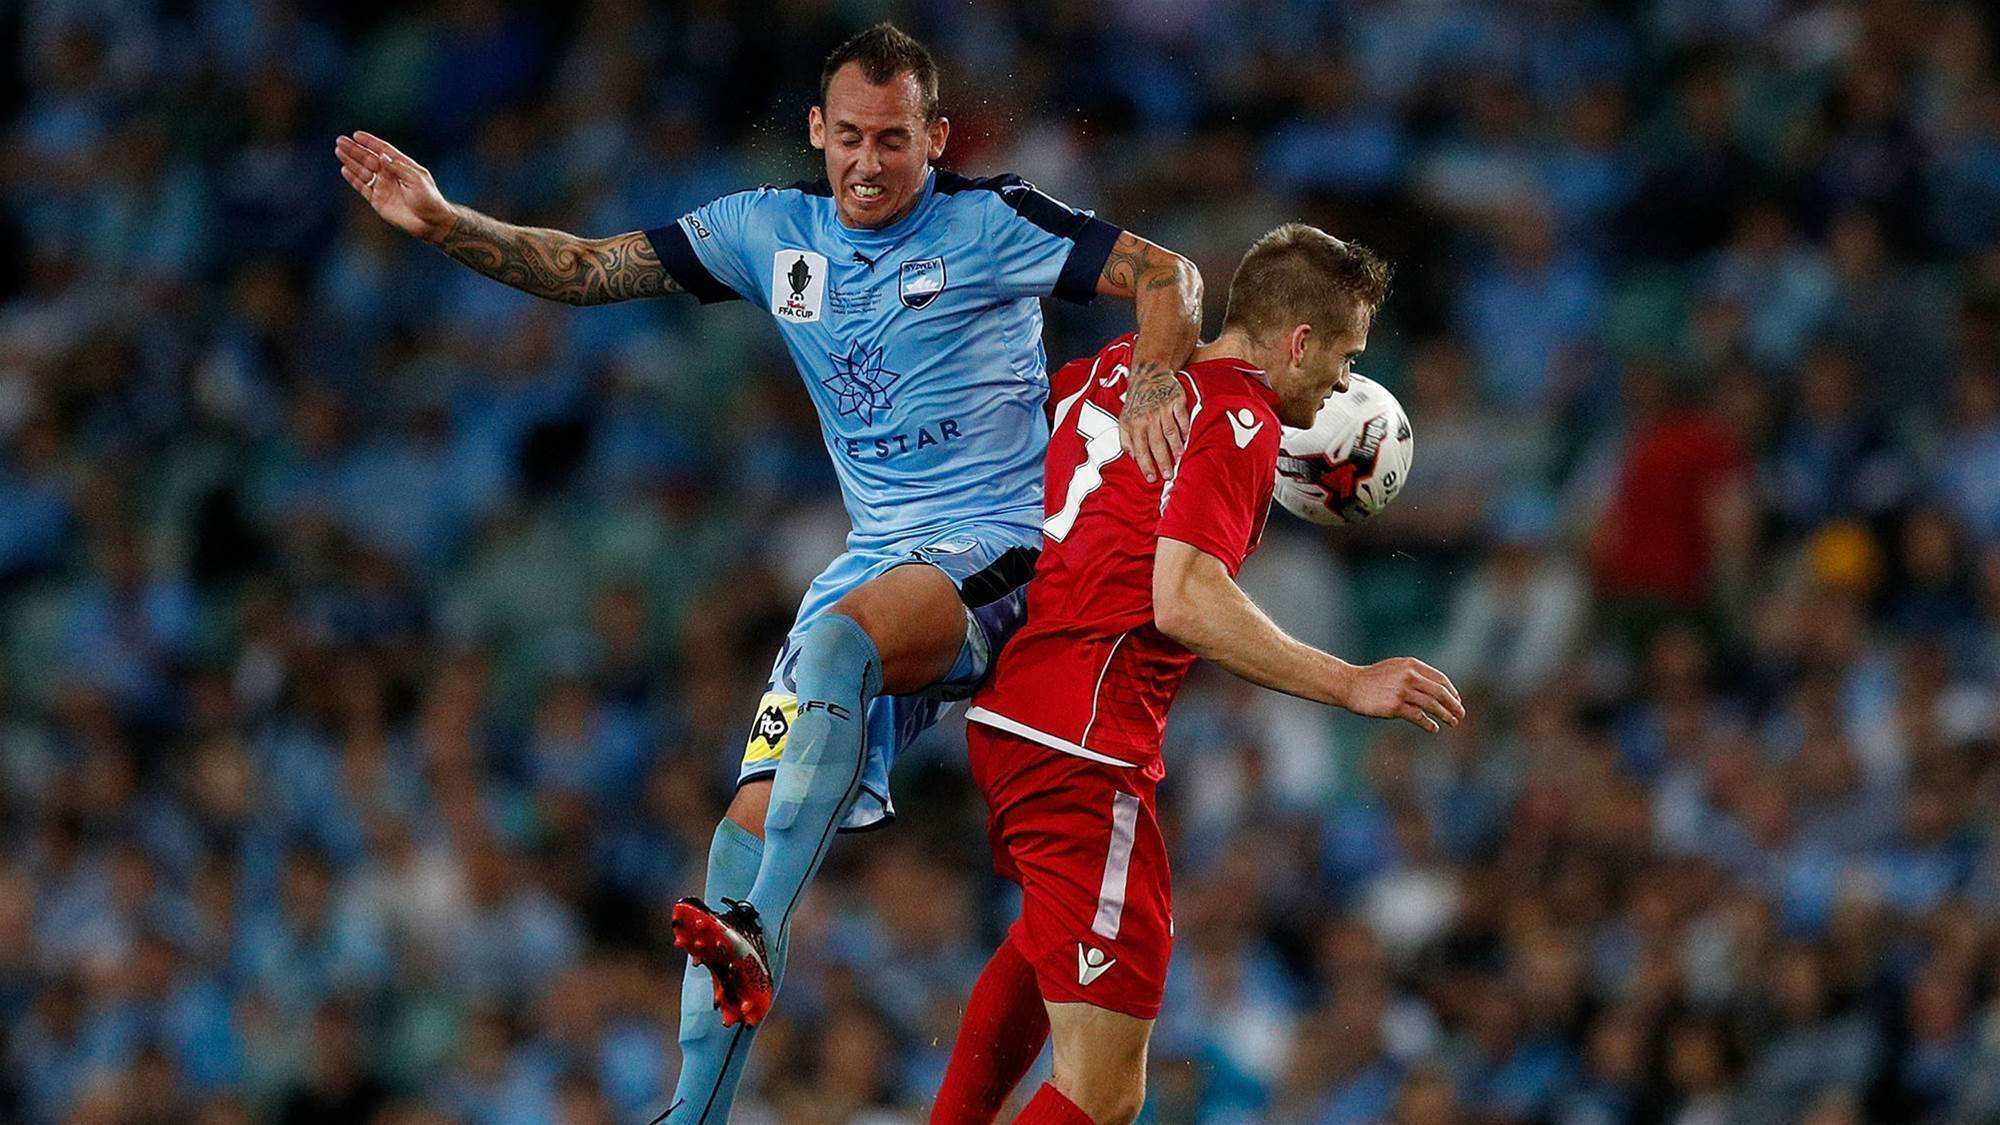 FFA Cup Final: Sydney FC v Adelaide United player ratings